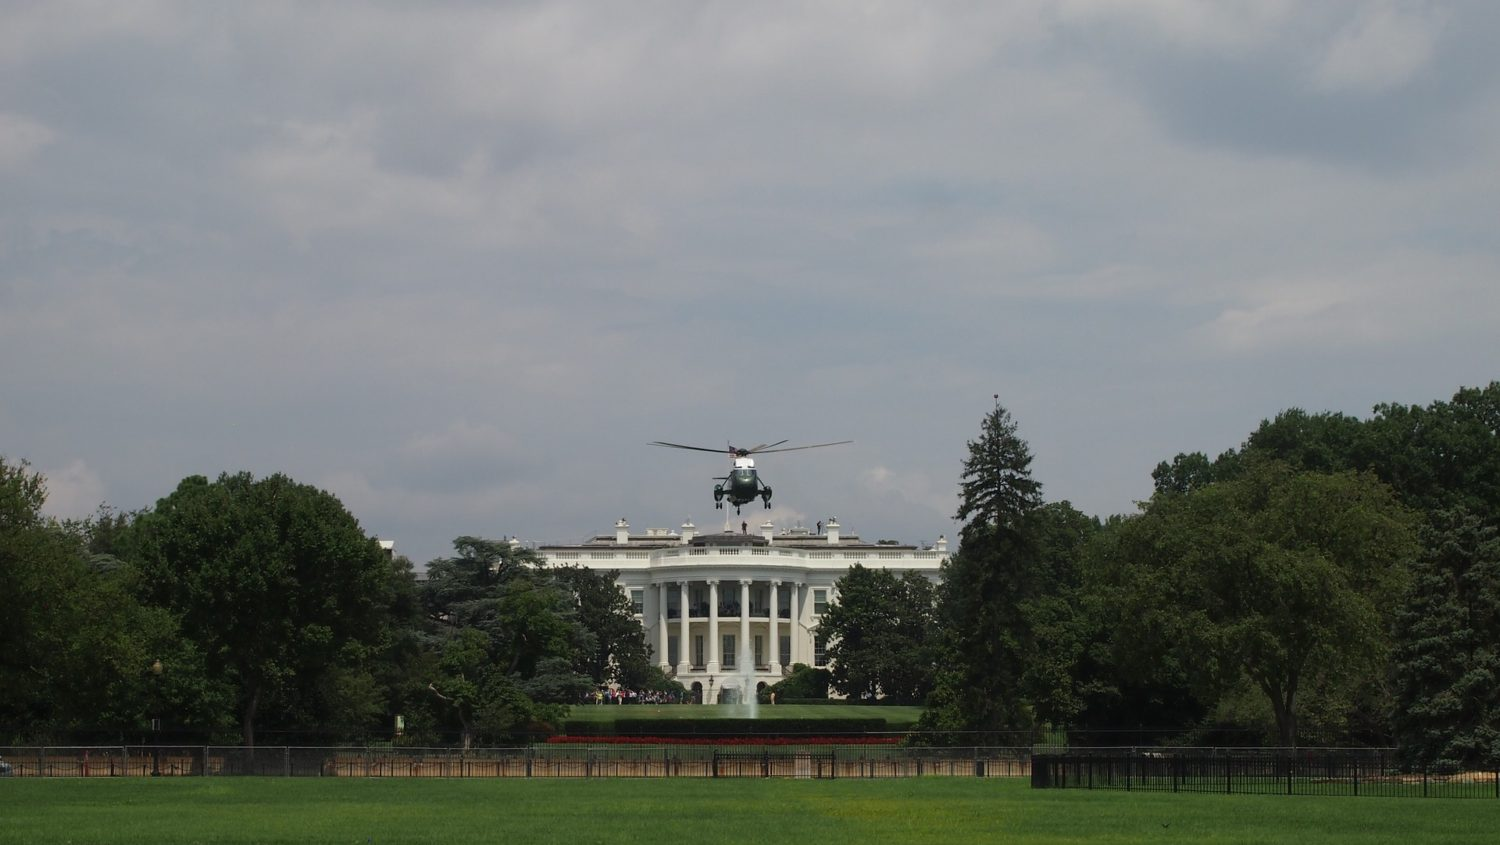 Marine One ar the White House, Washington, D.C.